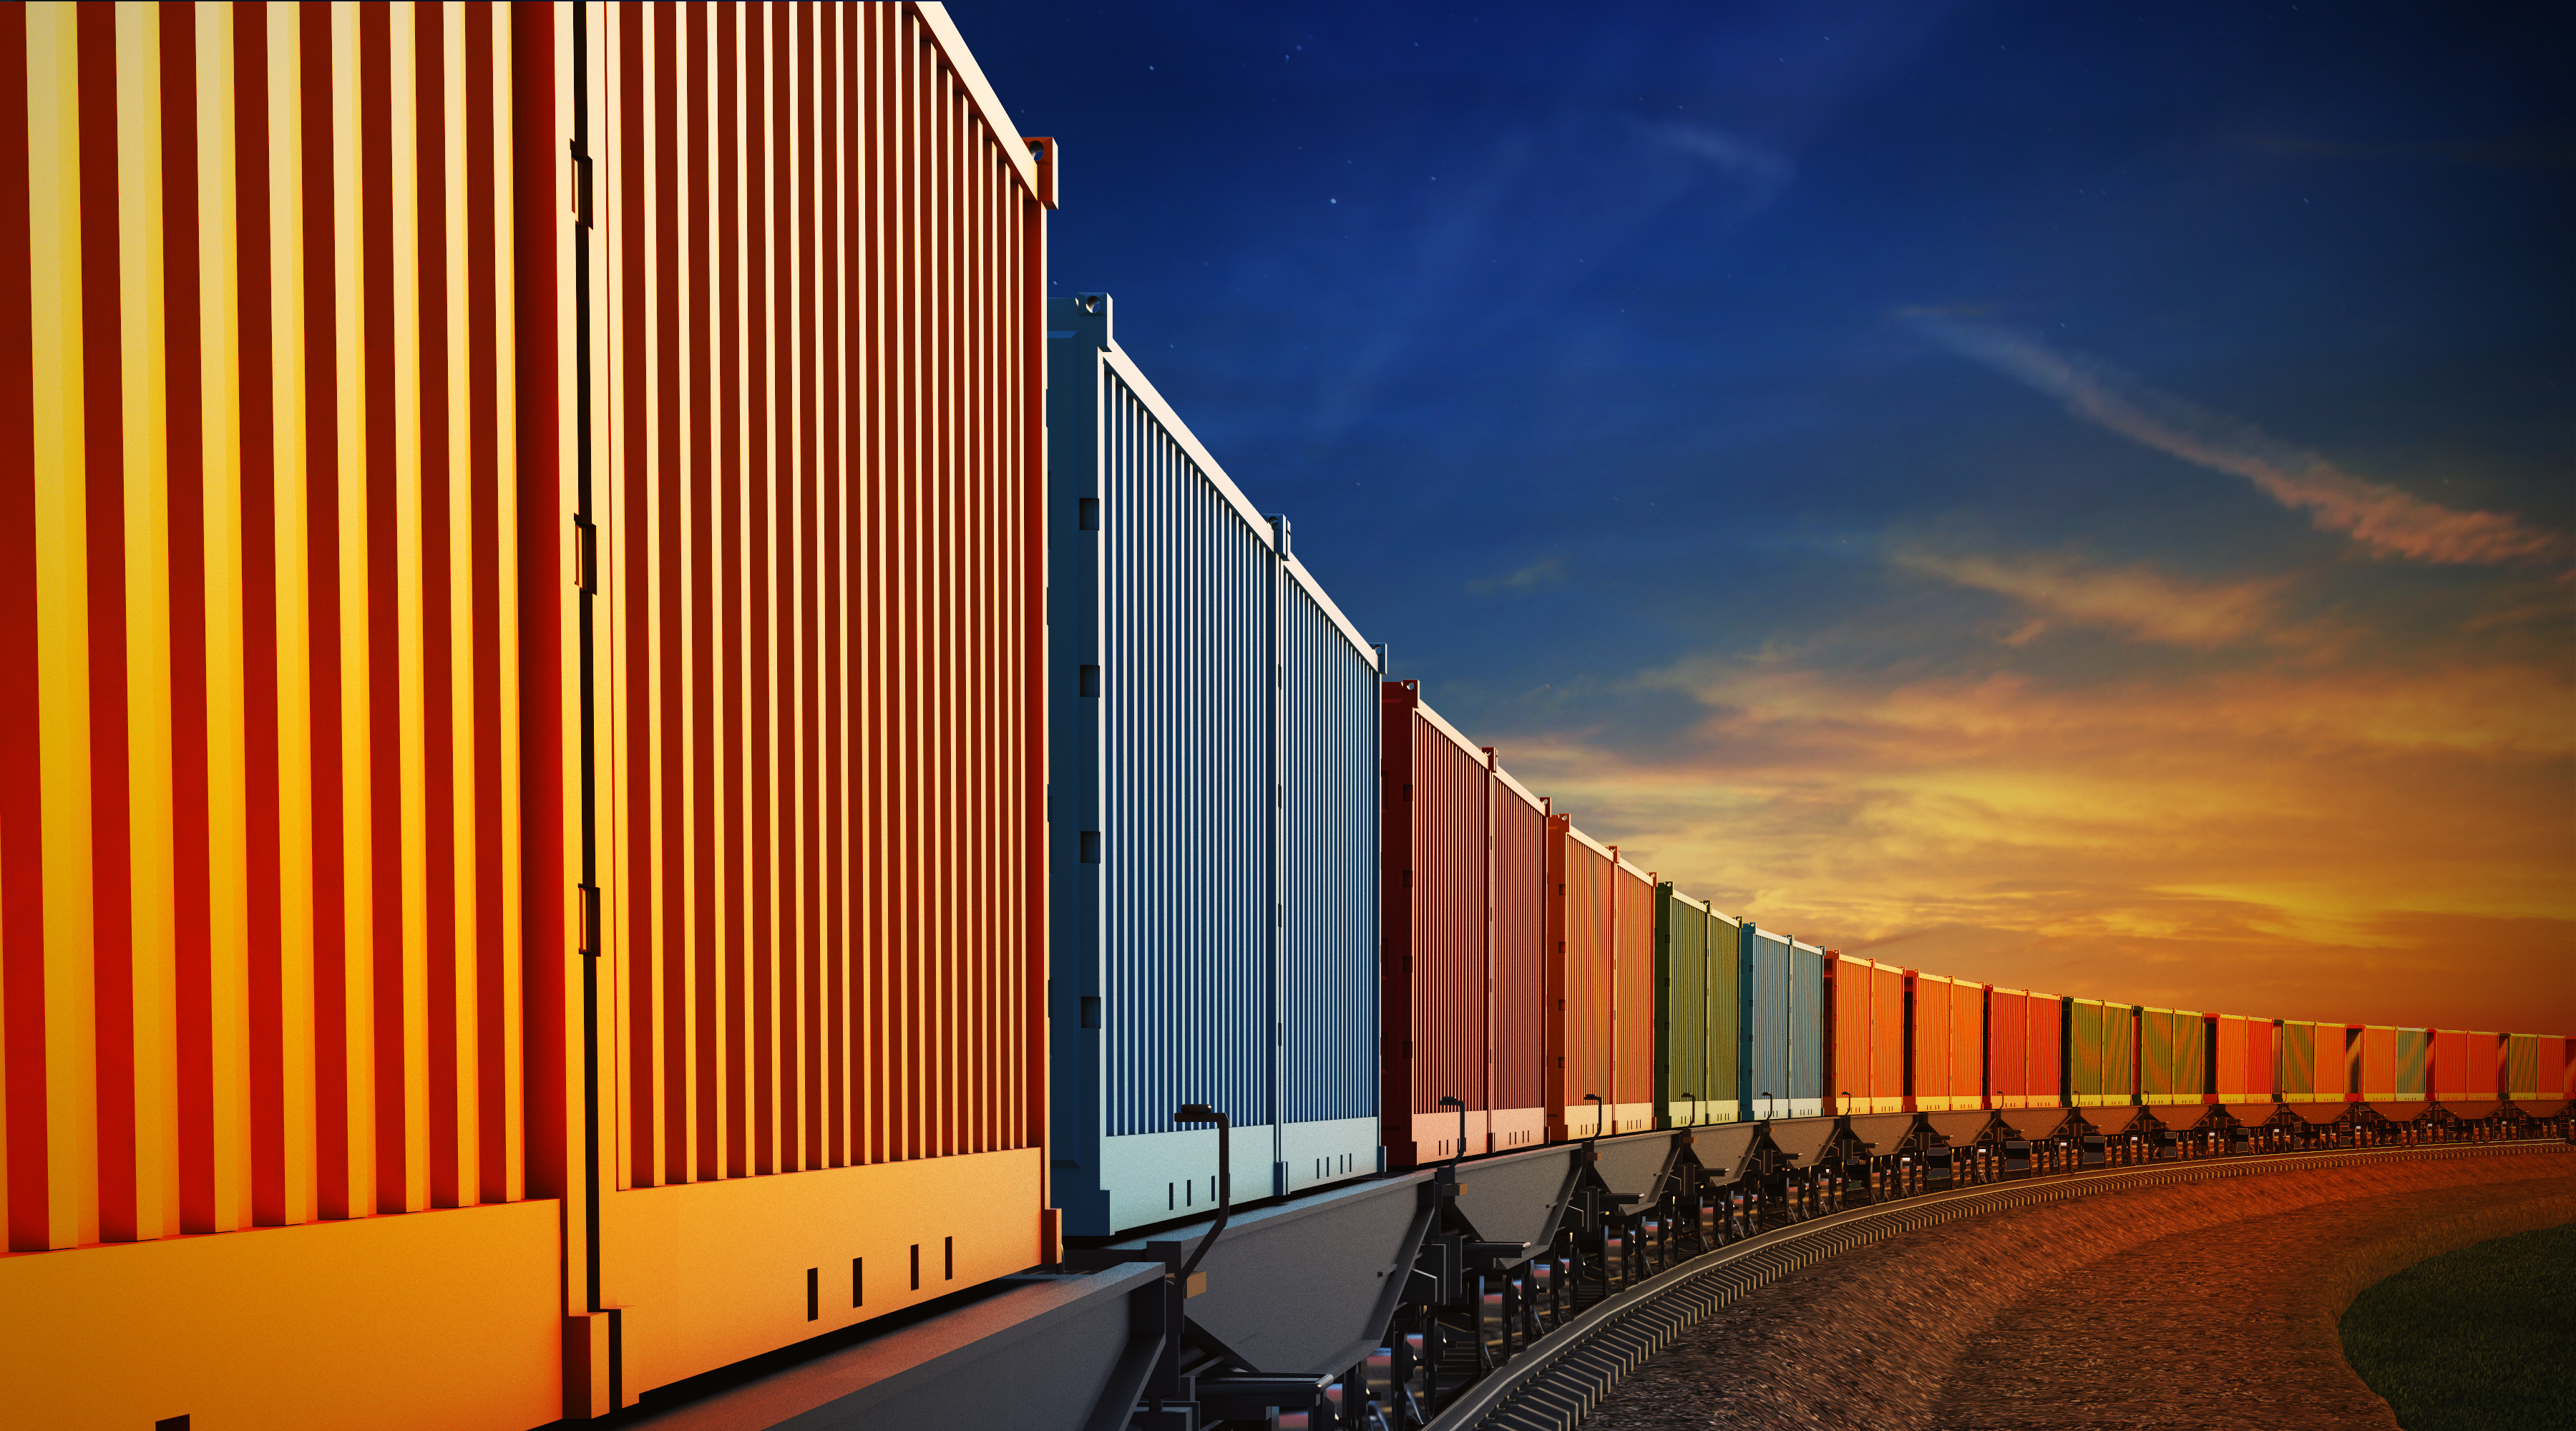 train with containers